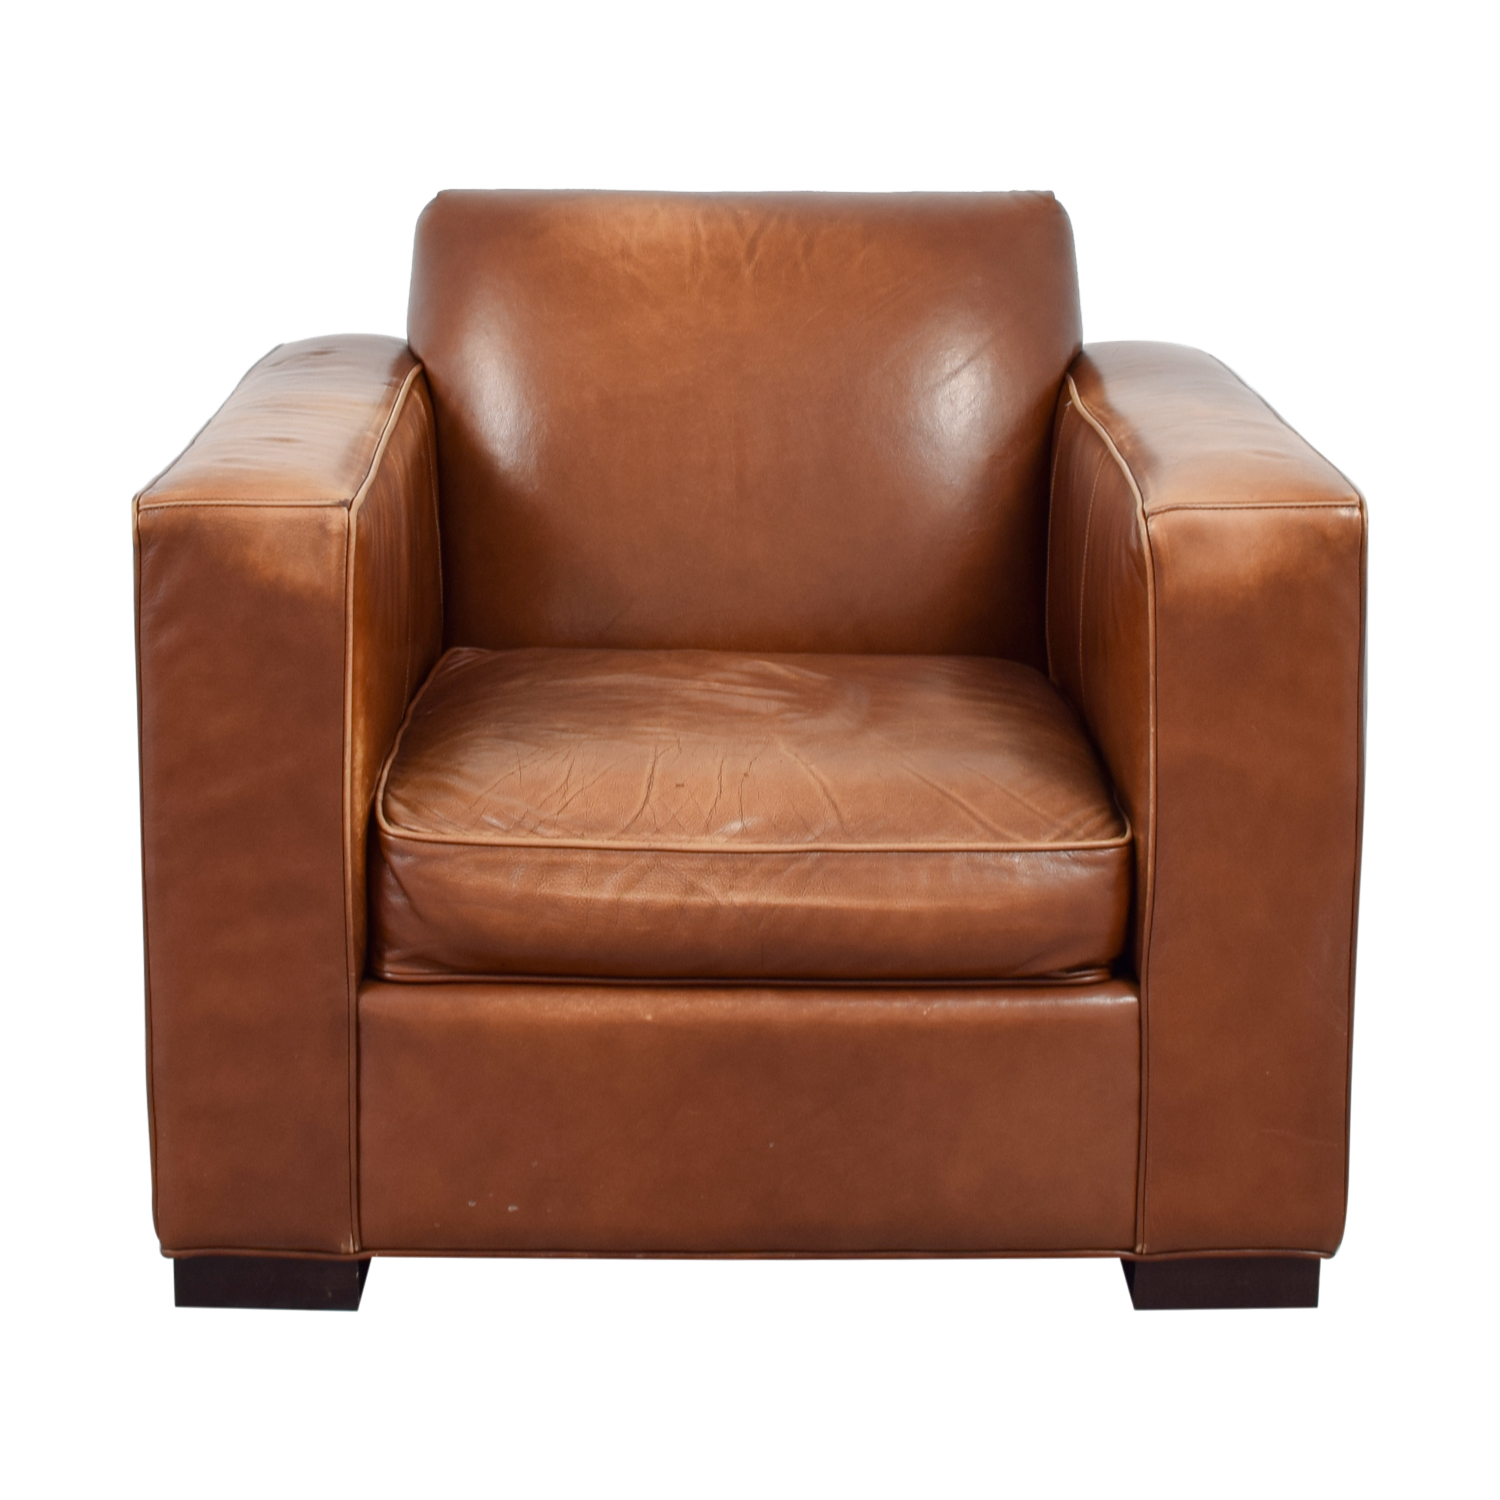 Room & Board Ian Saddle Leather Armchair / Chairs